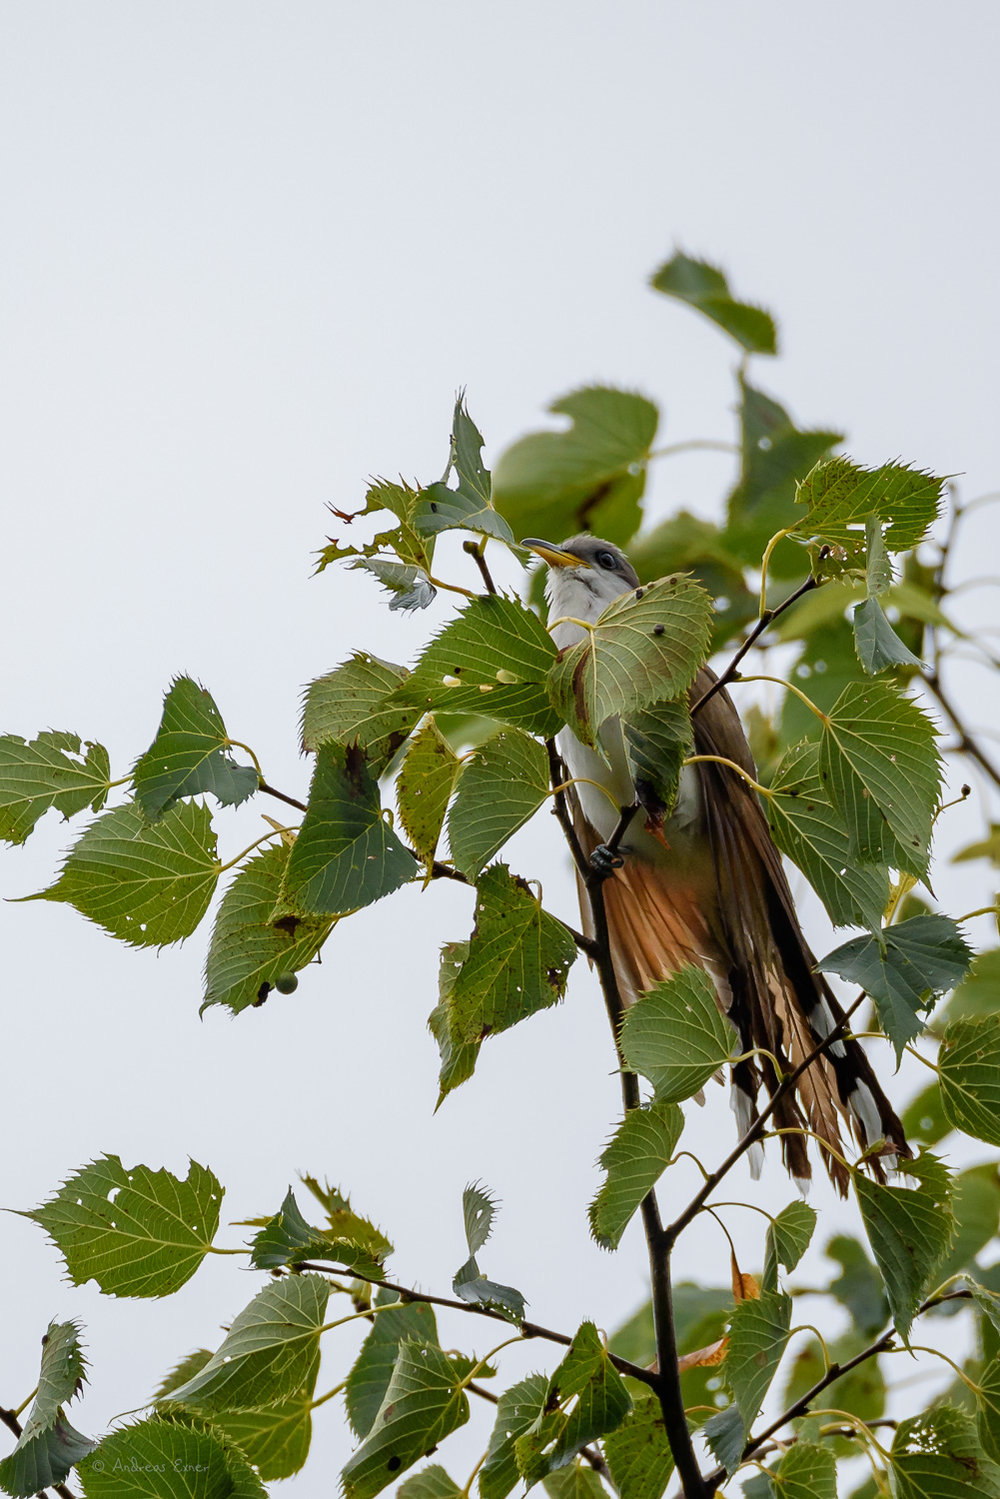 Yellow-bellied Cuckoo, near Durango, Iowa